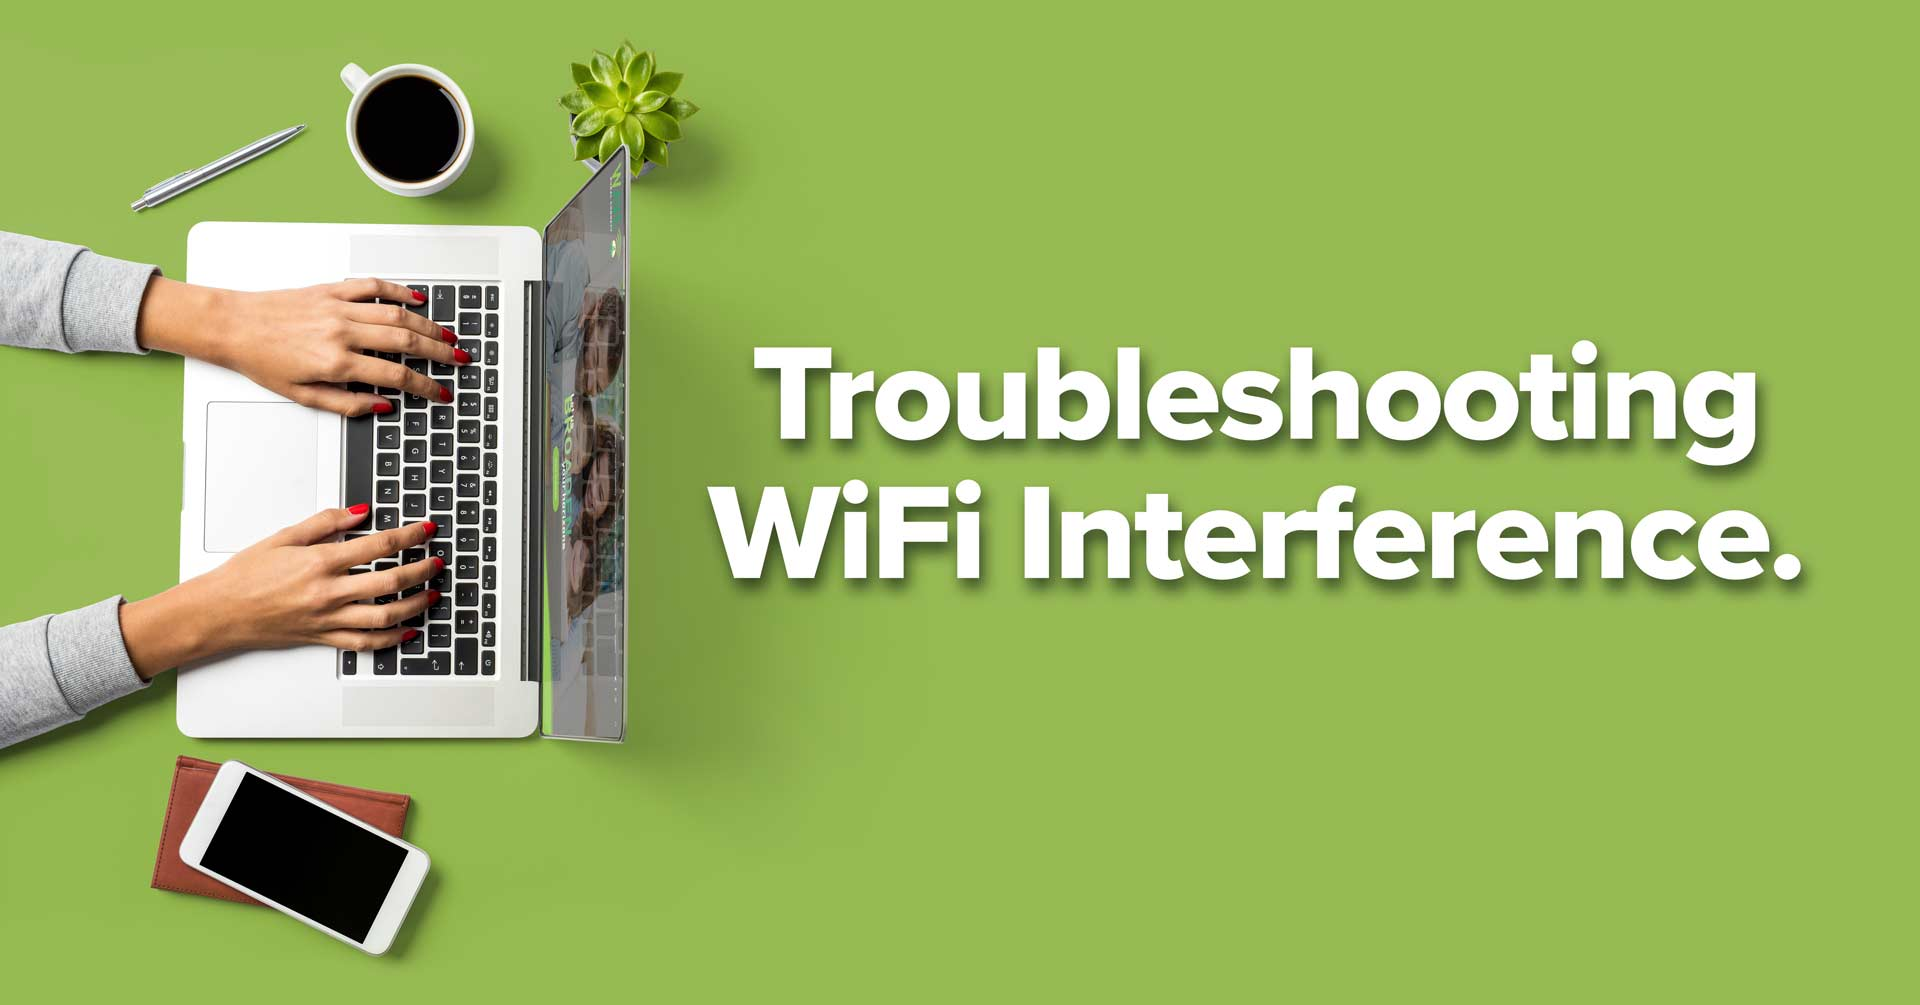 Troubleshooting WiFi Interference